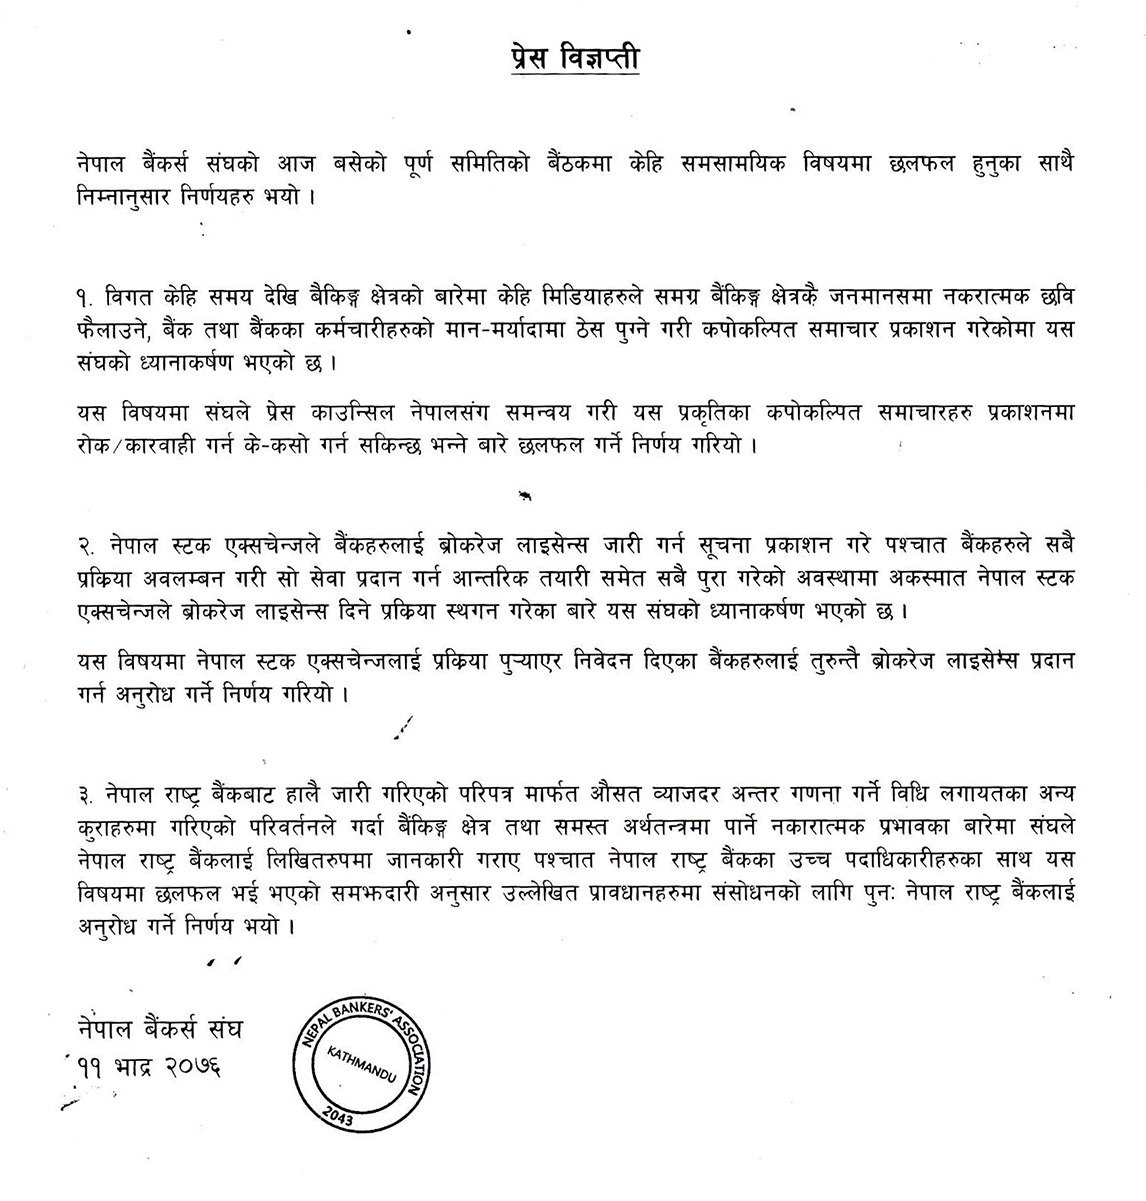 Press Release – Nepal Bankers' Association